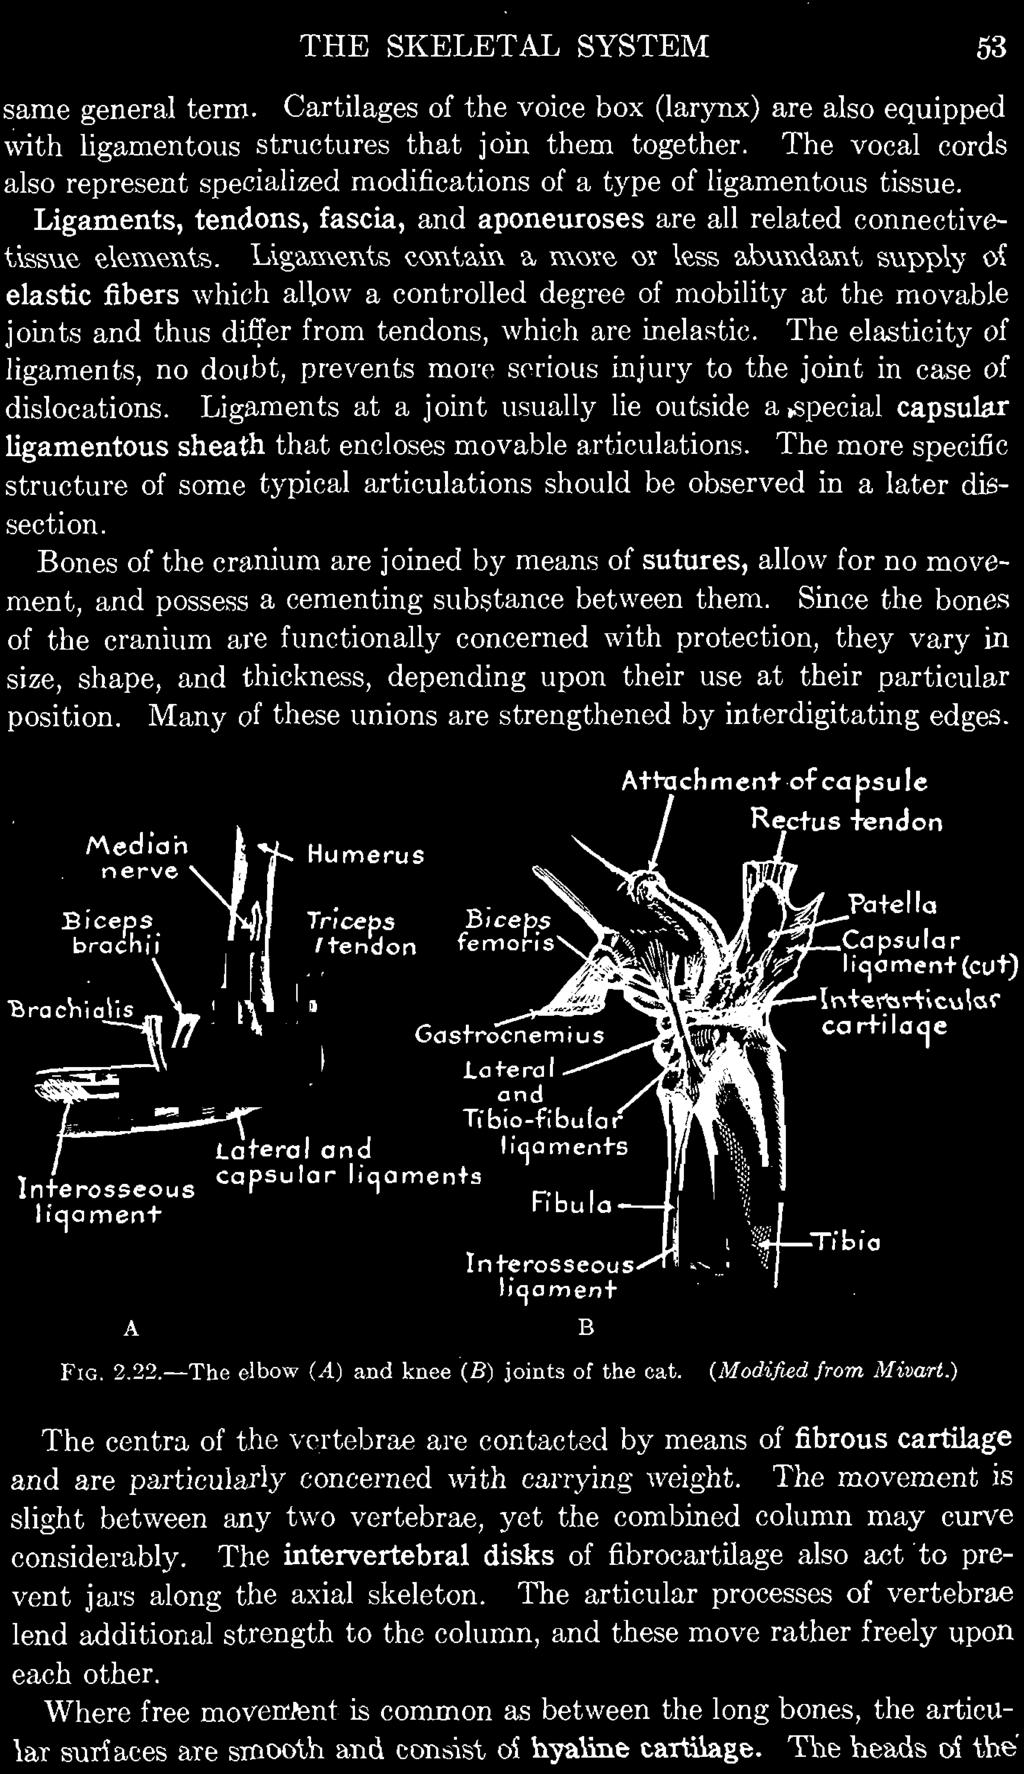 Ligaments ~onta,in a, mme or les'i:\ a,bunda,nt 'i:\upply 01 elastic fibers which auow a controlled degree of mobility at the movable joints and thus differ from tendons, which are inelastic.